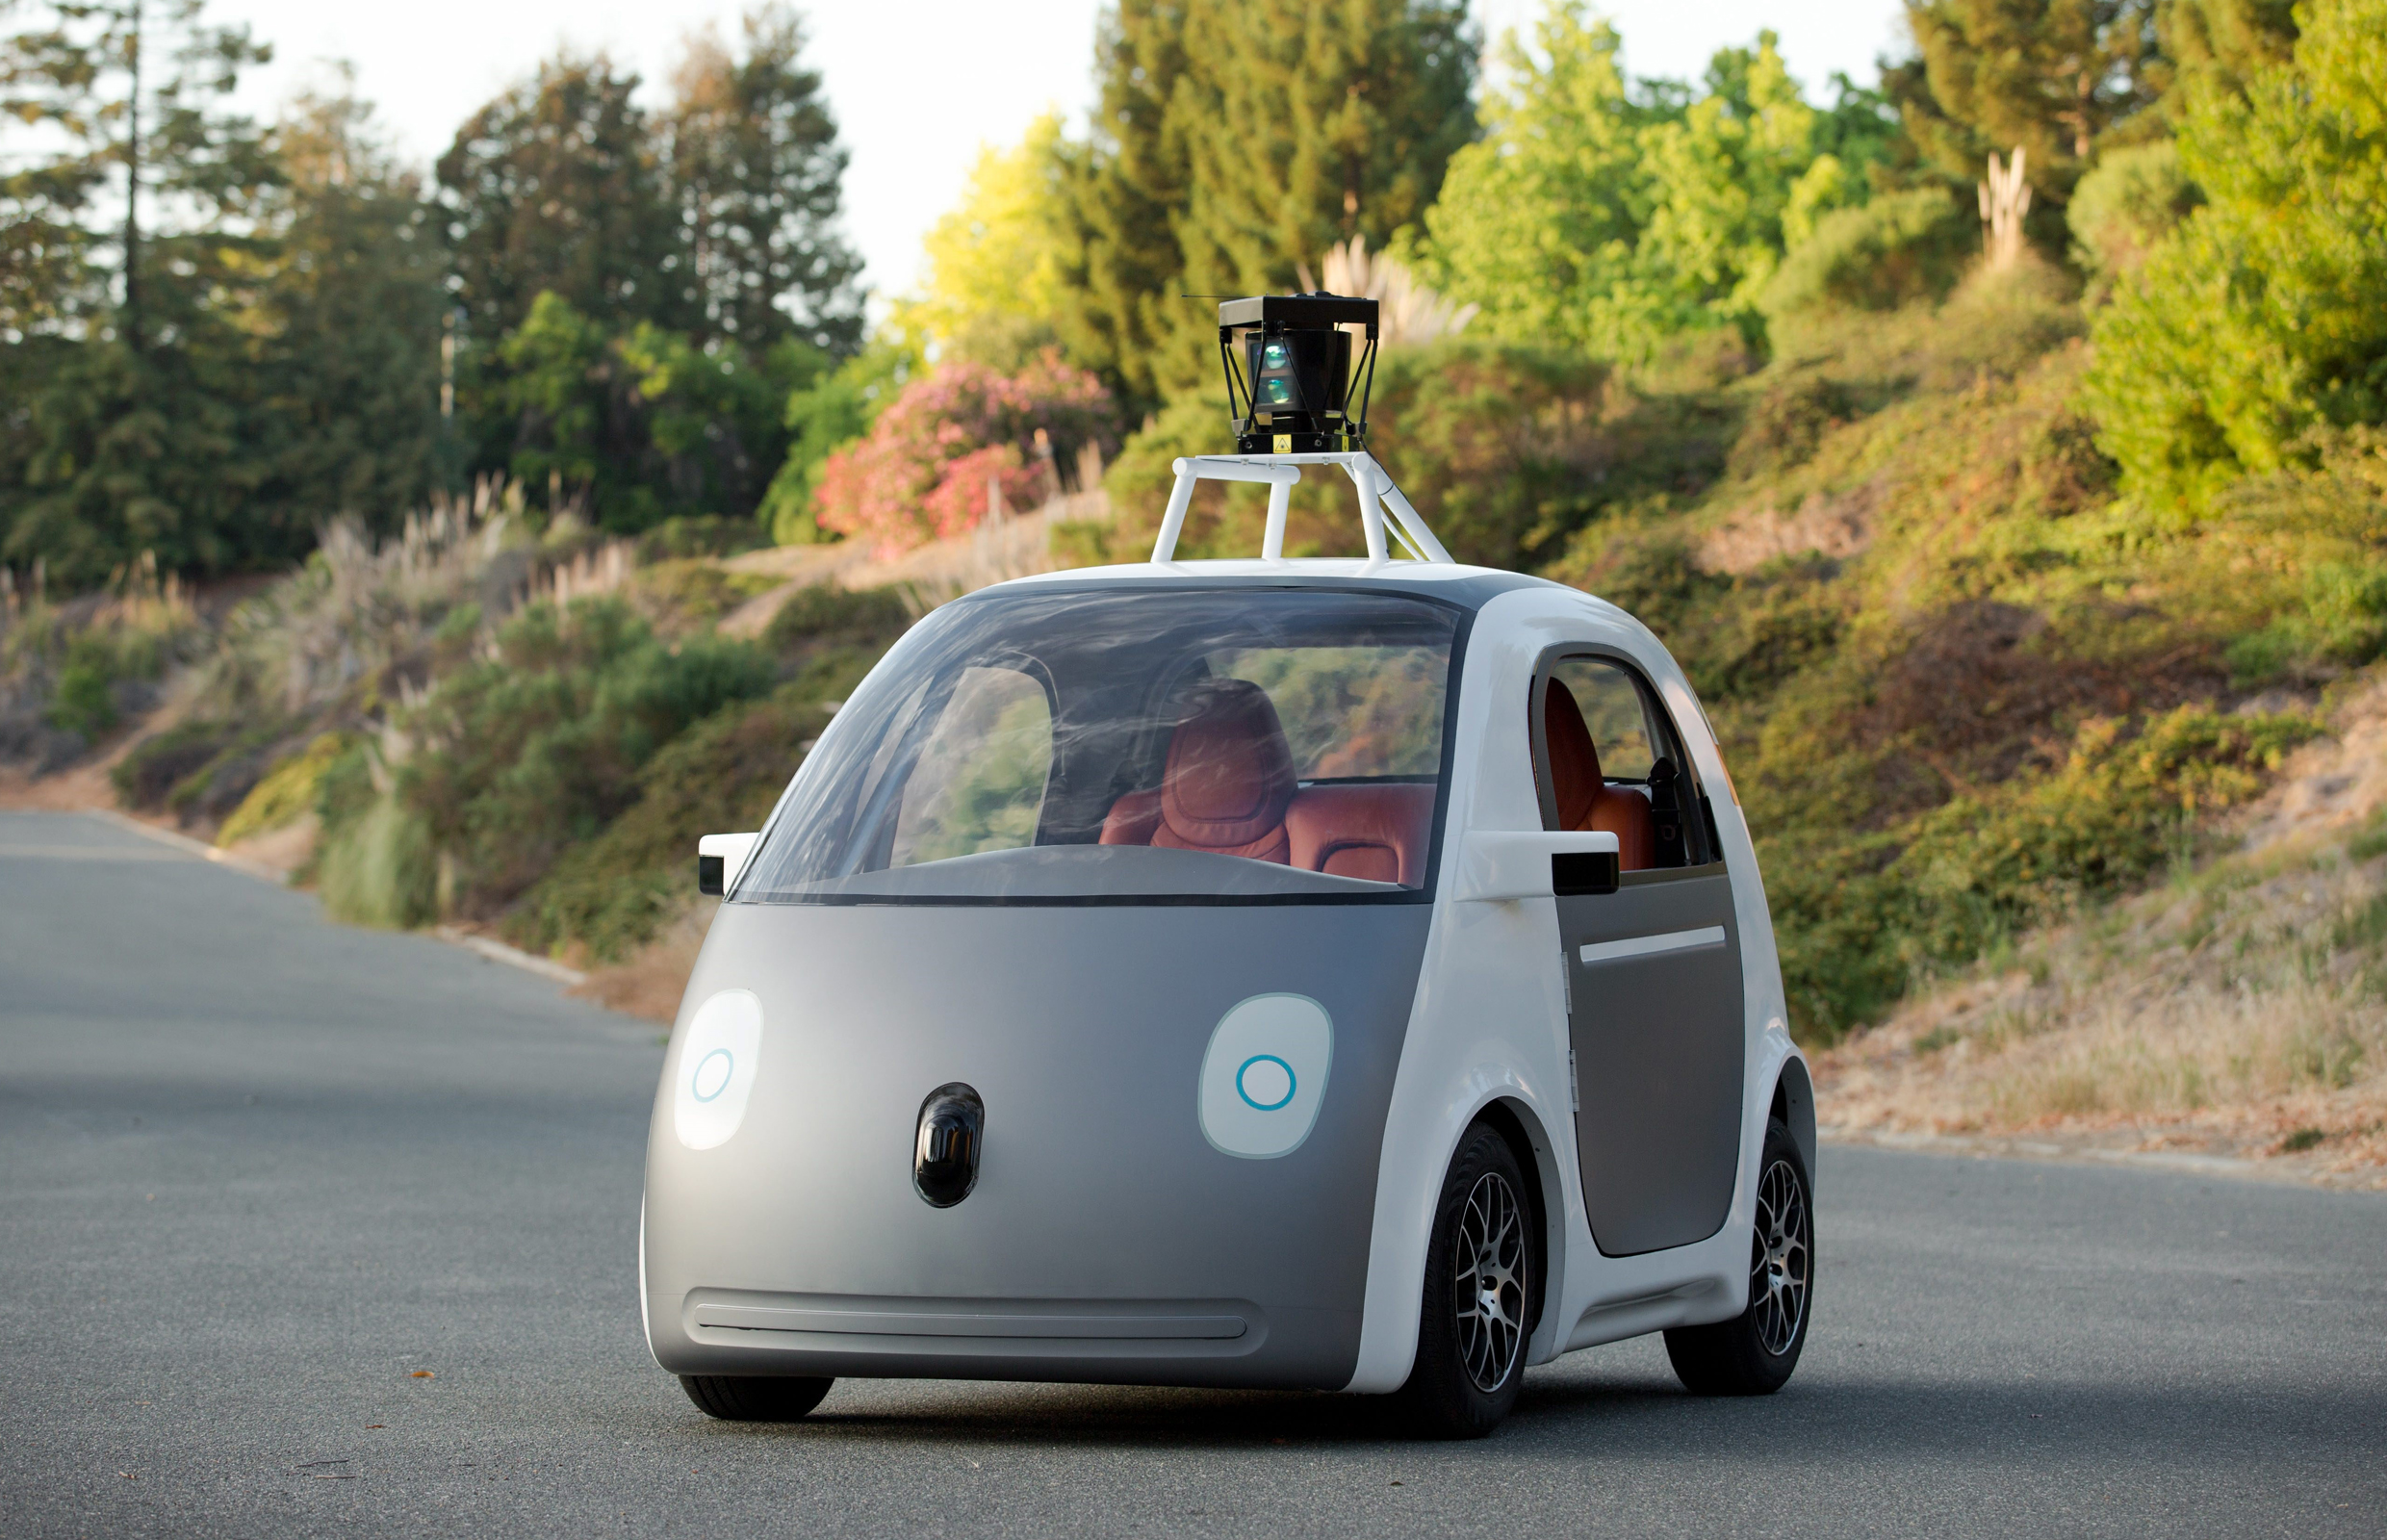 """"""" Google self-driving car """"BY S  moothgroover22 IS LICENSED UNDER CC BY 2.0"""